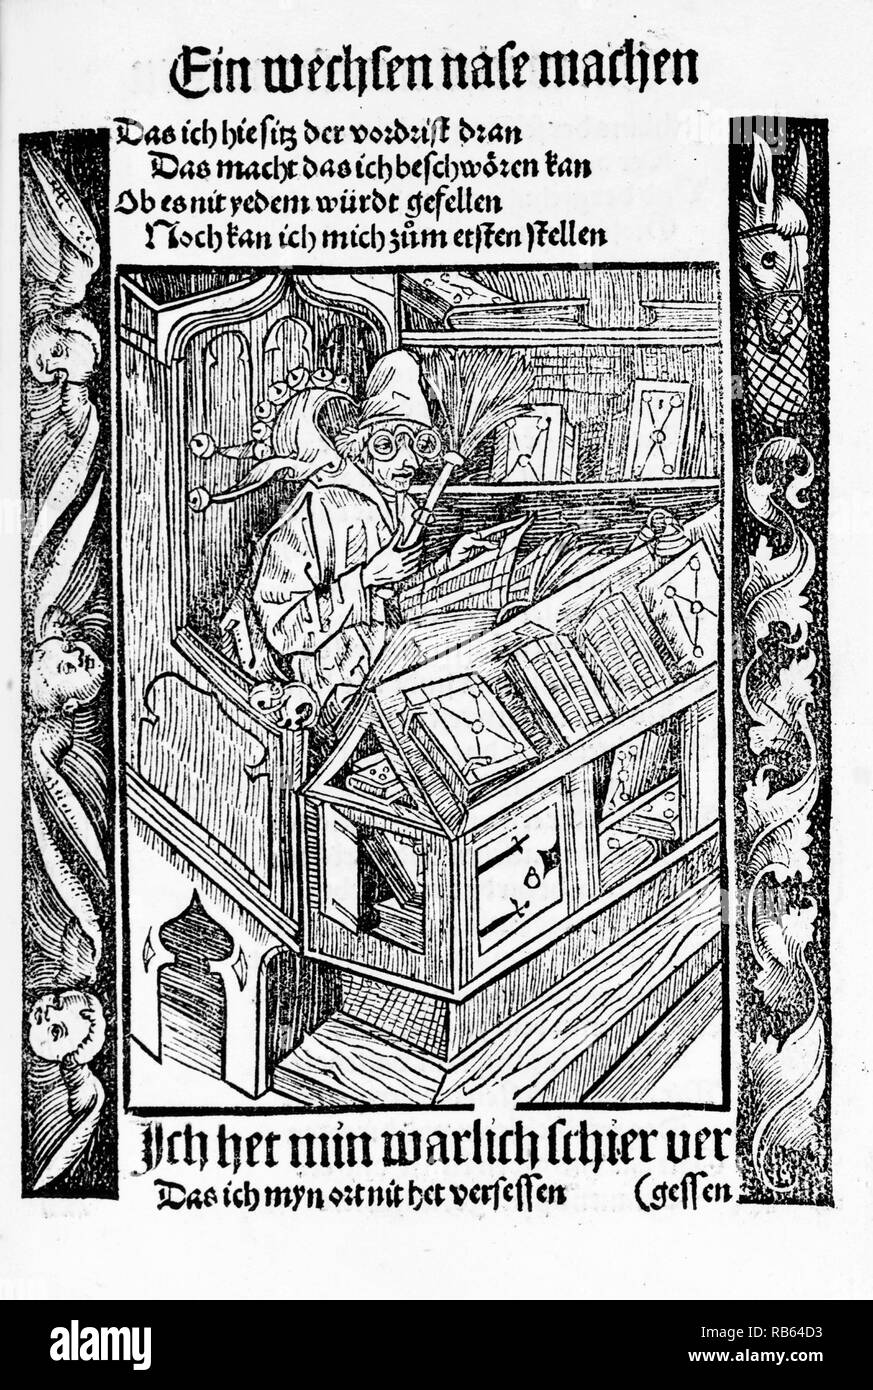 Woodcut of a Medieval book collector sitting at a desk reading. Dated 1494 - Stock Image